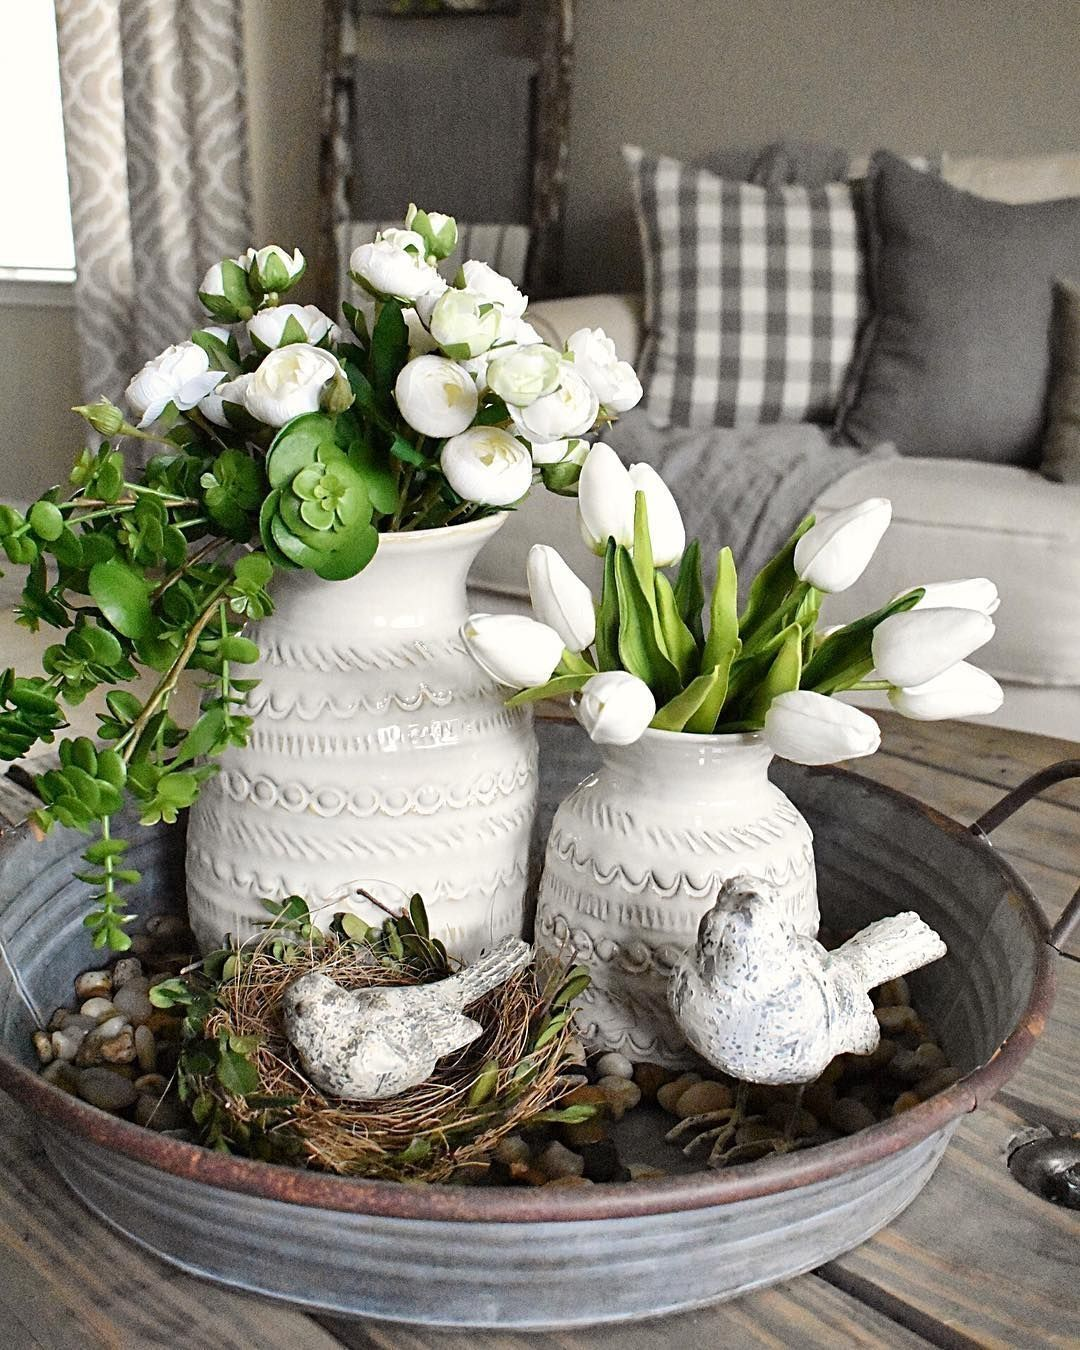 43 Delightful Spring Table Decoration Ideas Spring table